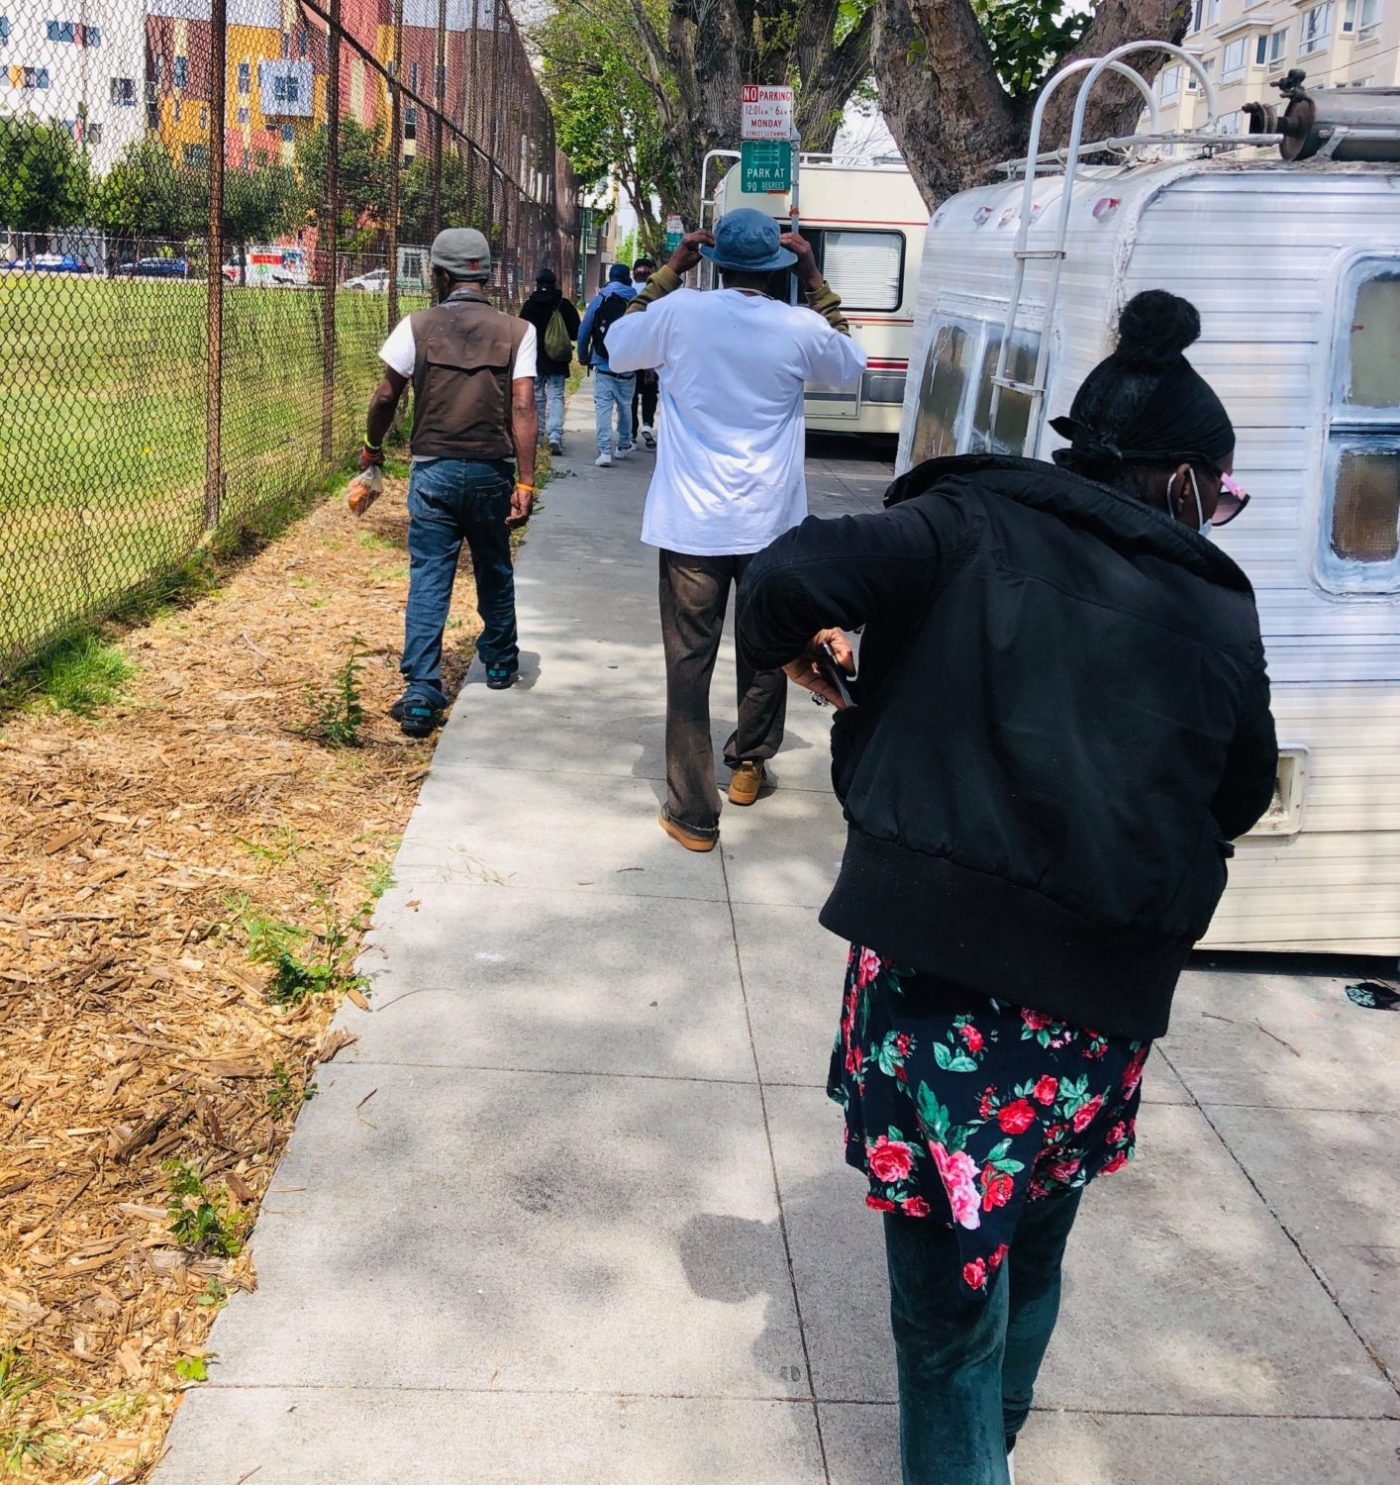 Beds-4-Bayview-Michael-Bennett-of-Bayview-Senior-Services-at-Rosa-Parks-Senior-Center-leads-'Wellness-Walk'-around-MLK-Park-1400x1485, Community seizes MLK Park as immediate COVID relief for unhoused neighbors, Local News & Views